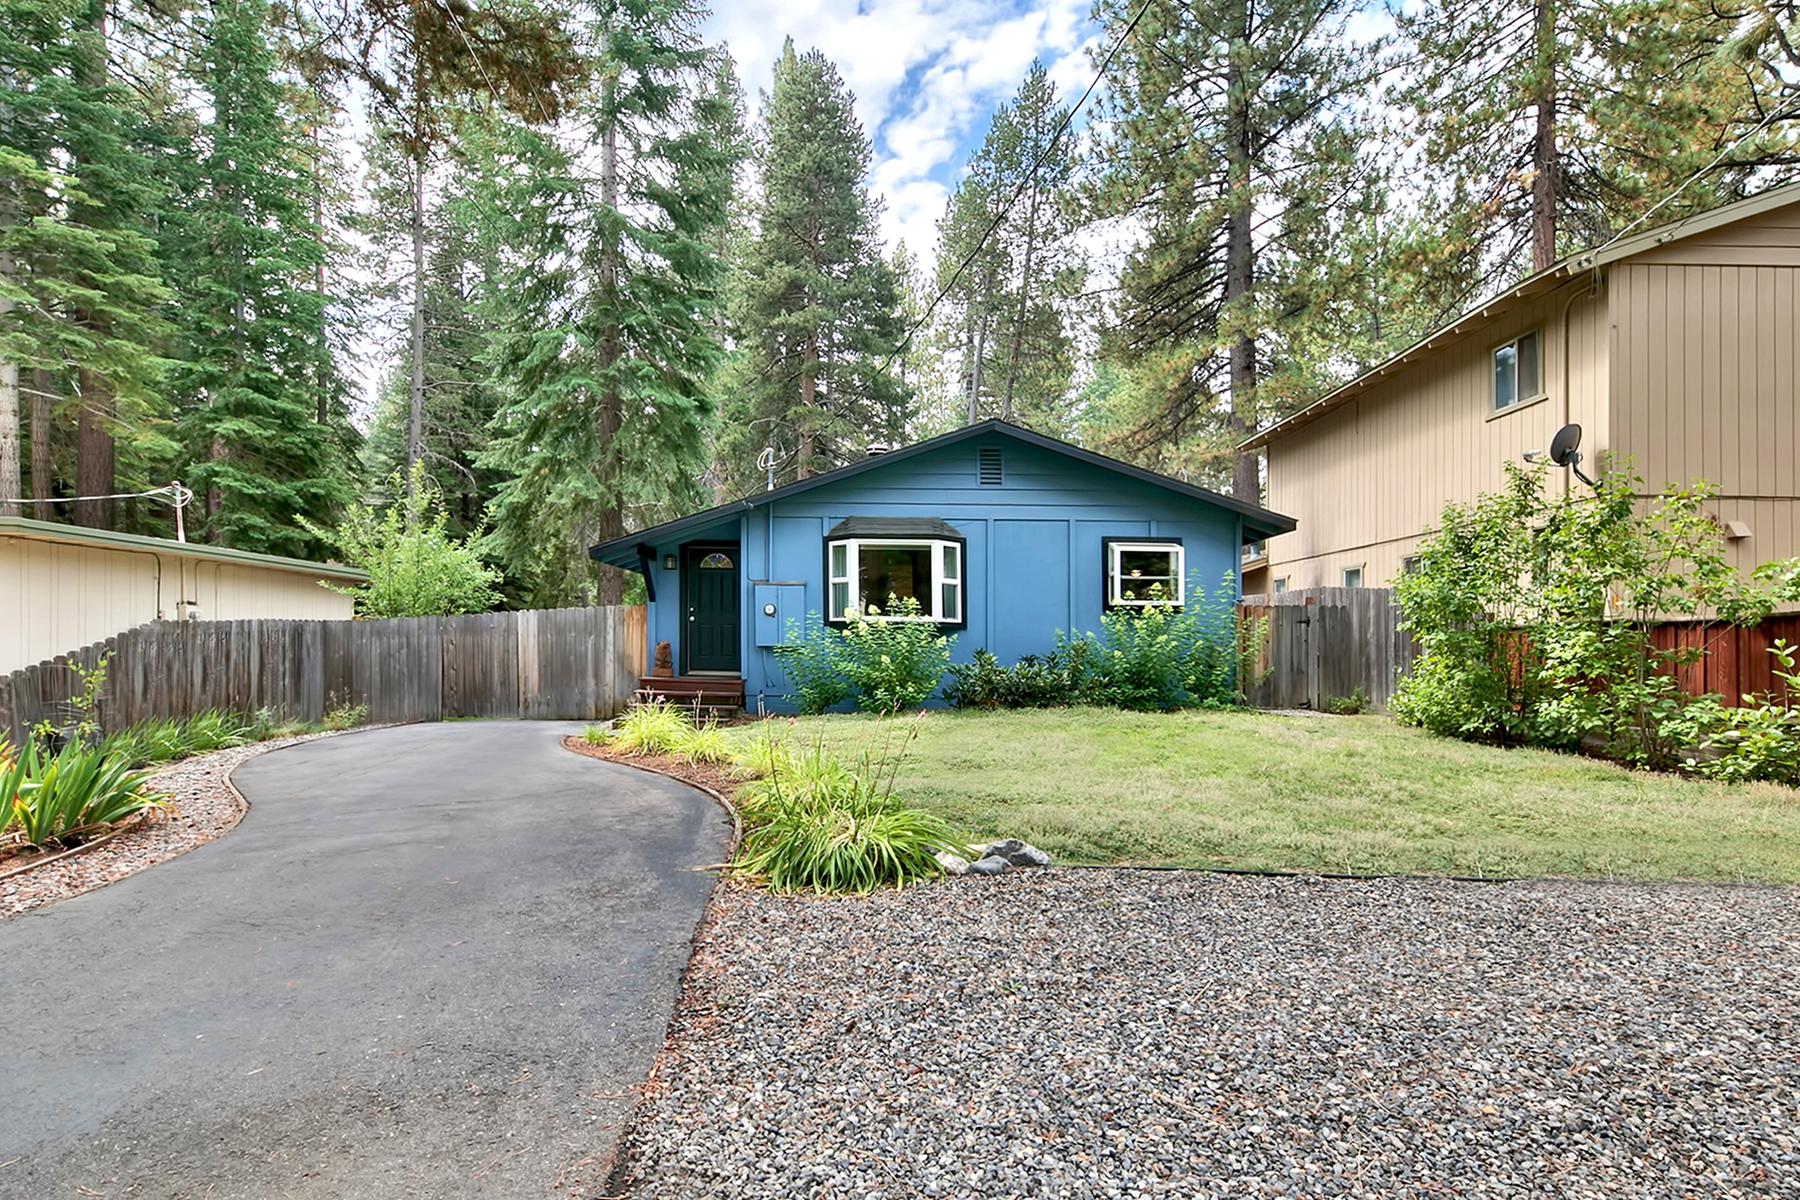 Additional photo for property listing at 550 Eloise Avenue South Lake Tahoe, California, 96150 550 Eloise Avenue South Lake Tahoe, California 96150 Estados Unidos